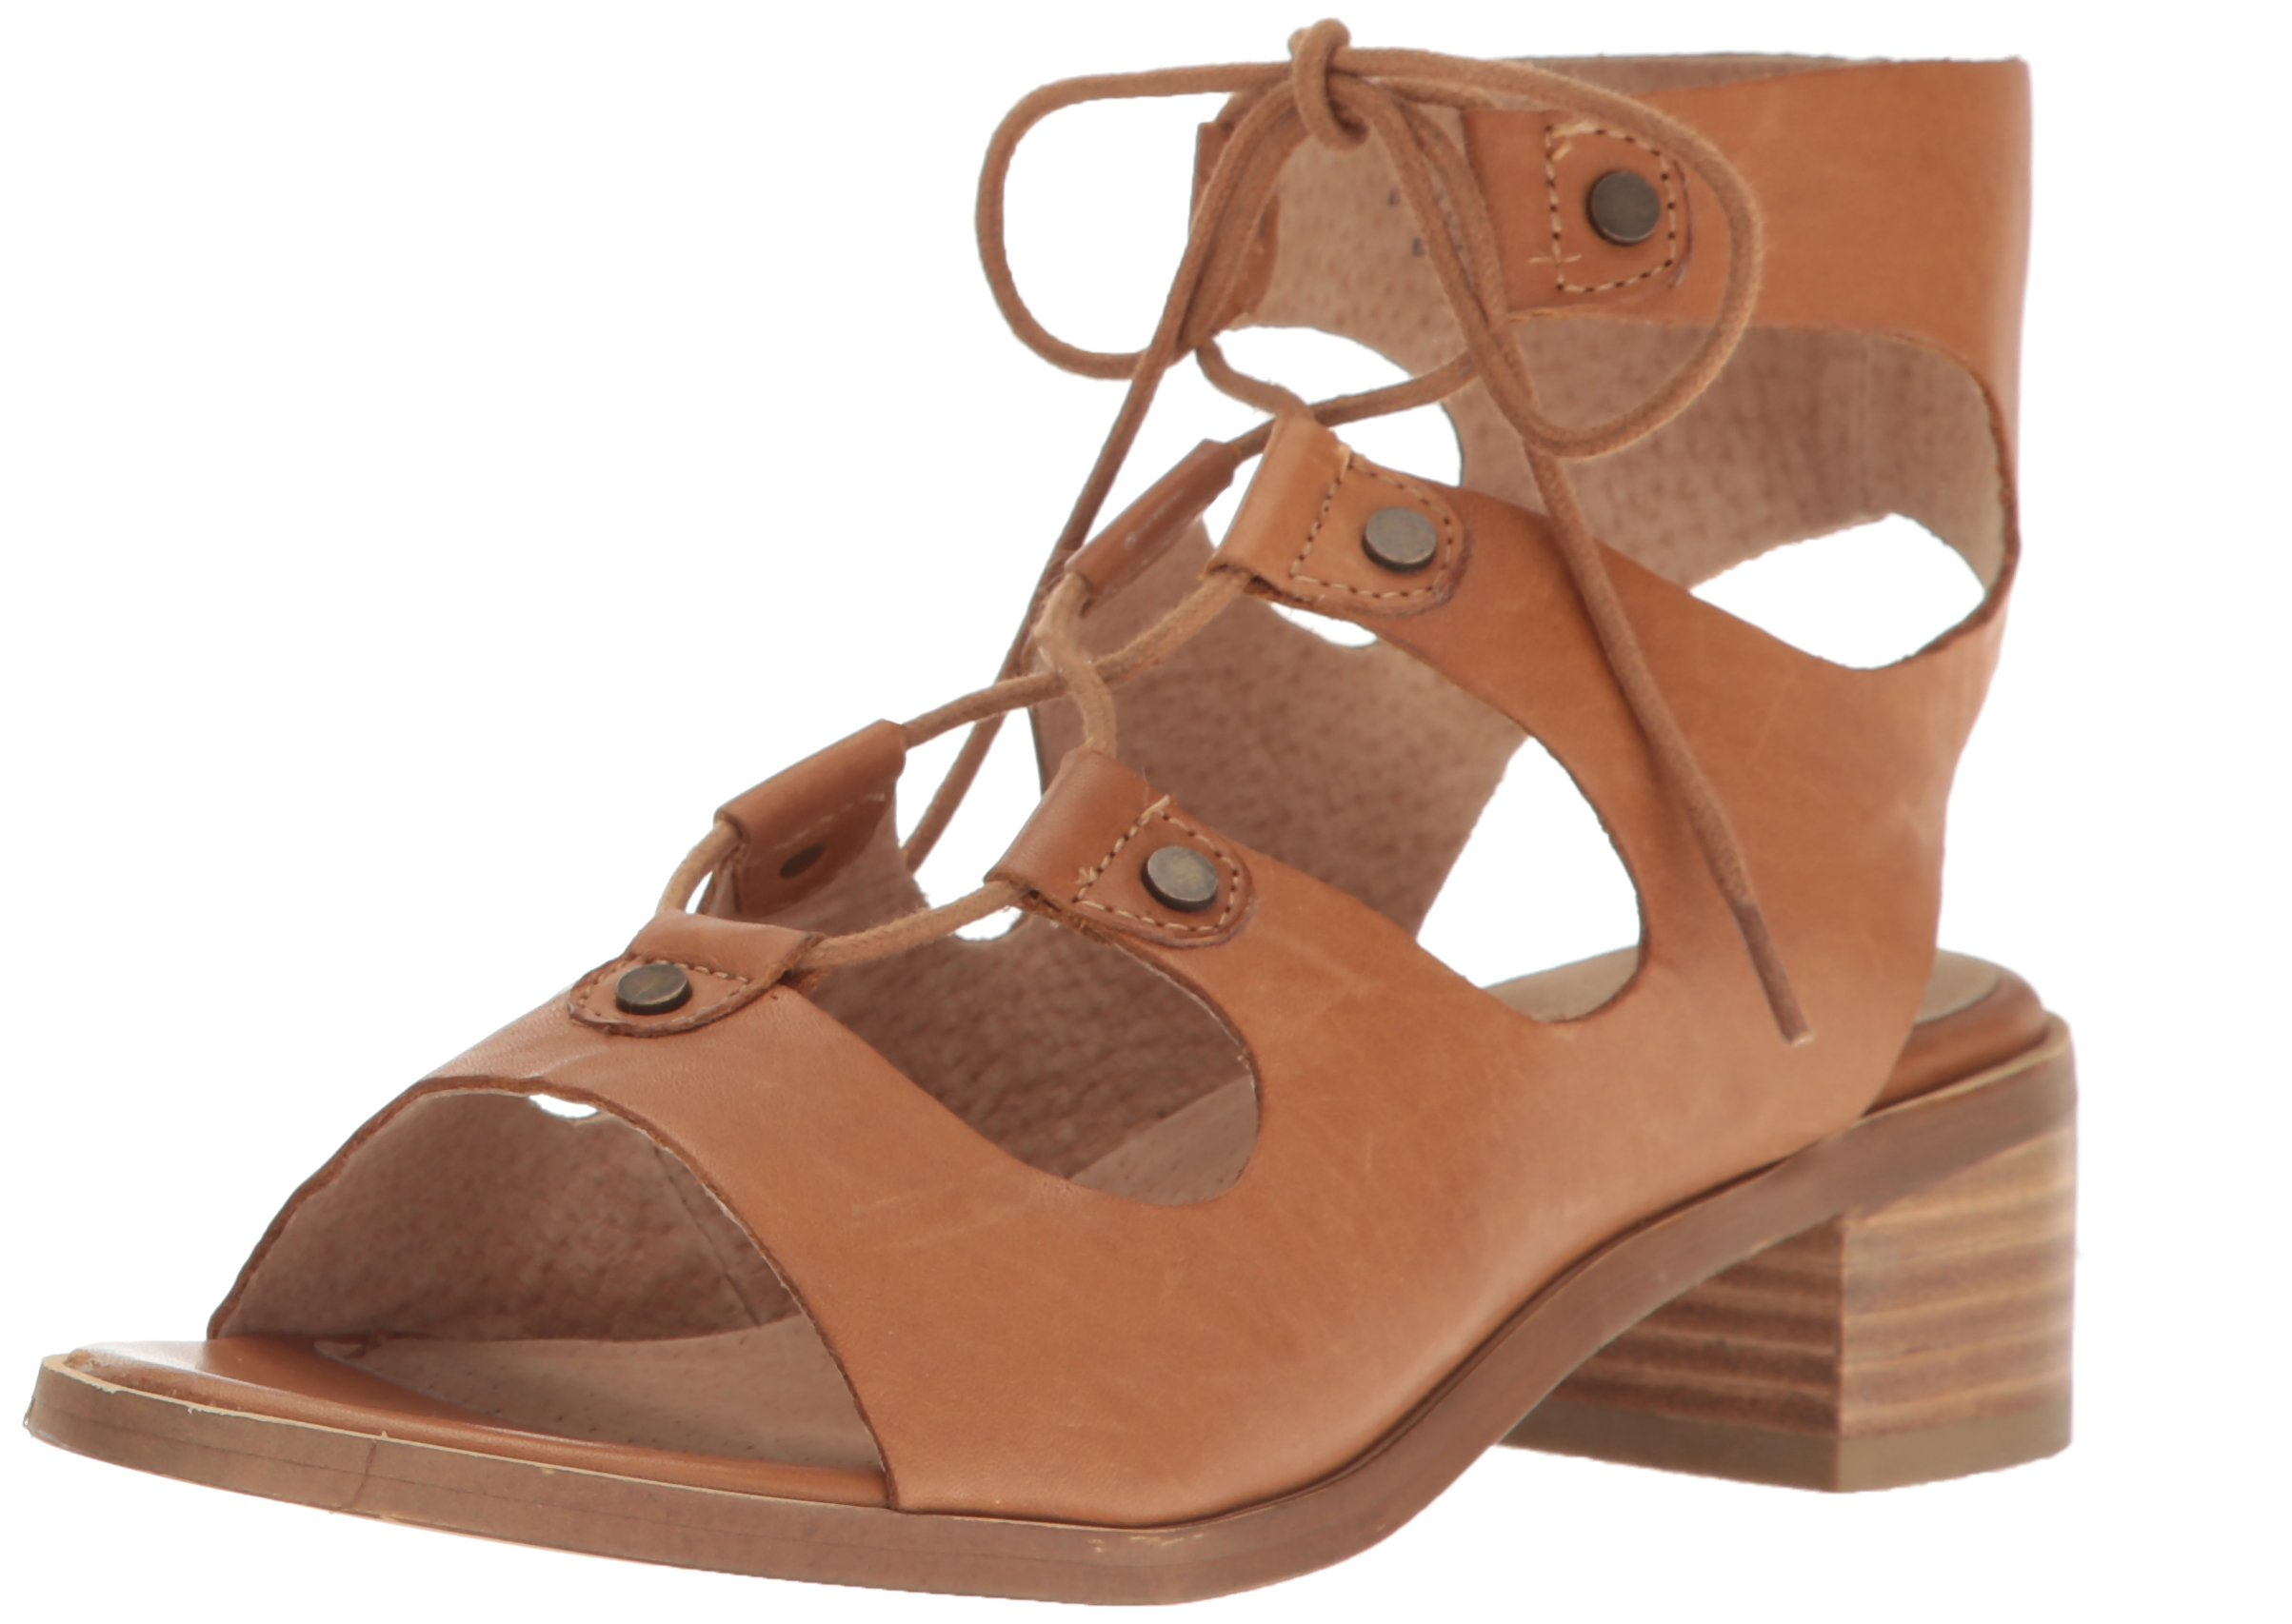 Seychelles Women's Love Affair Dress Sandal, Whiskey, 9.5 M US